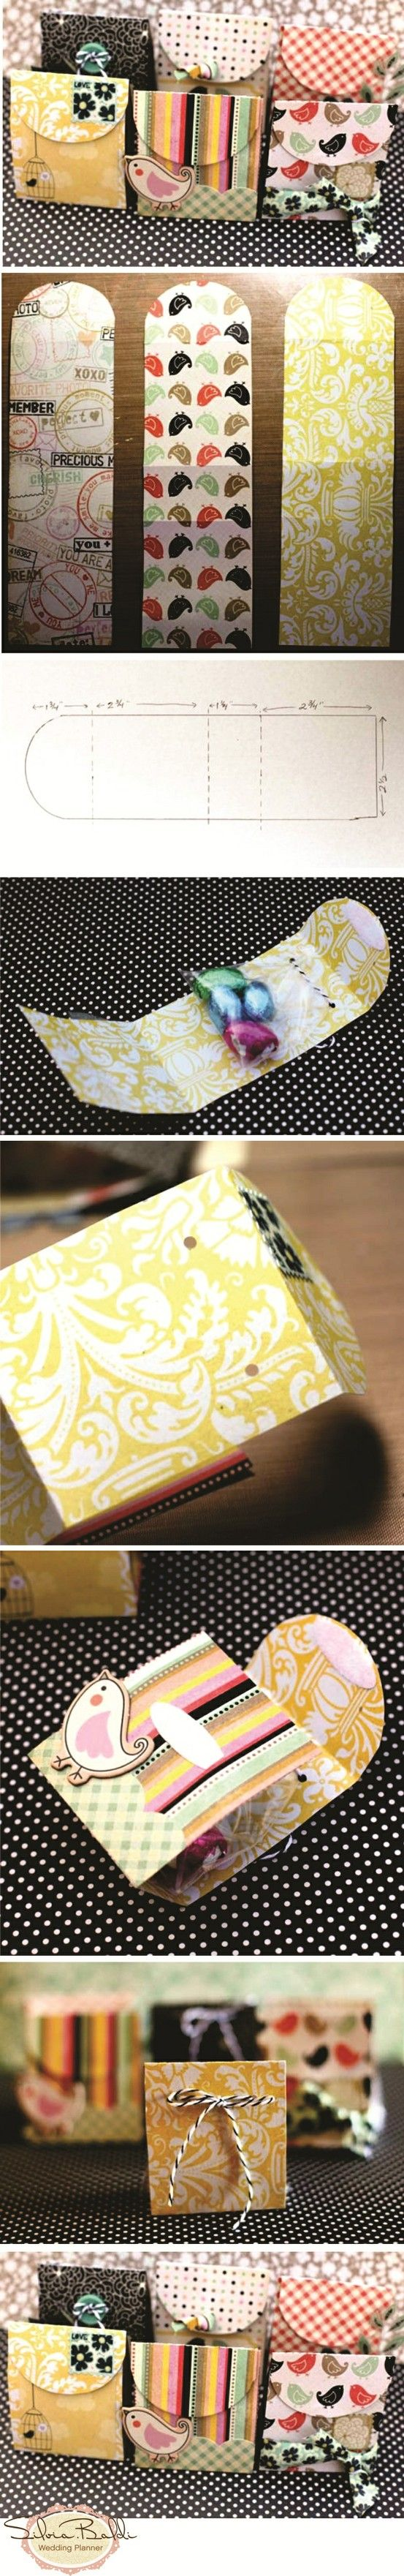 DIY wedding or party favor boxes~Super easy & they can B made as simple or intricate as you like!